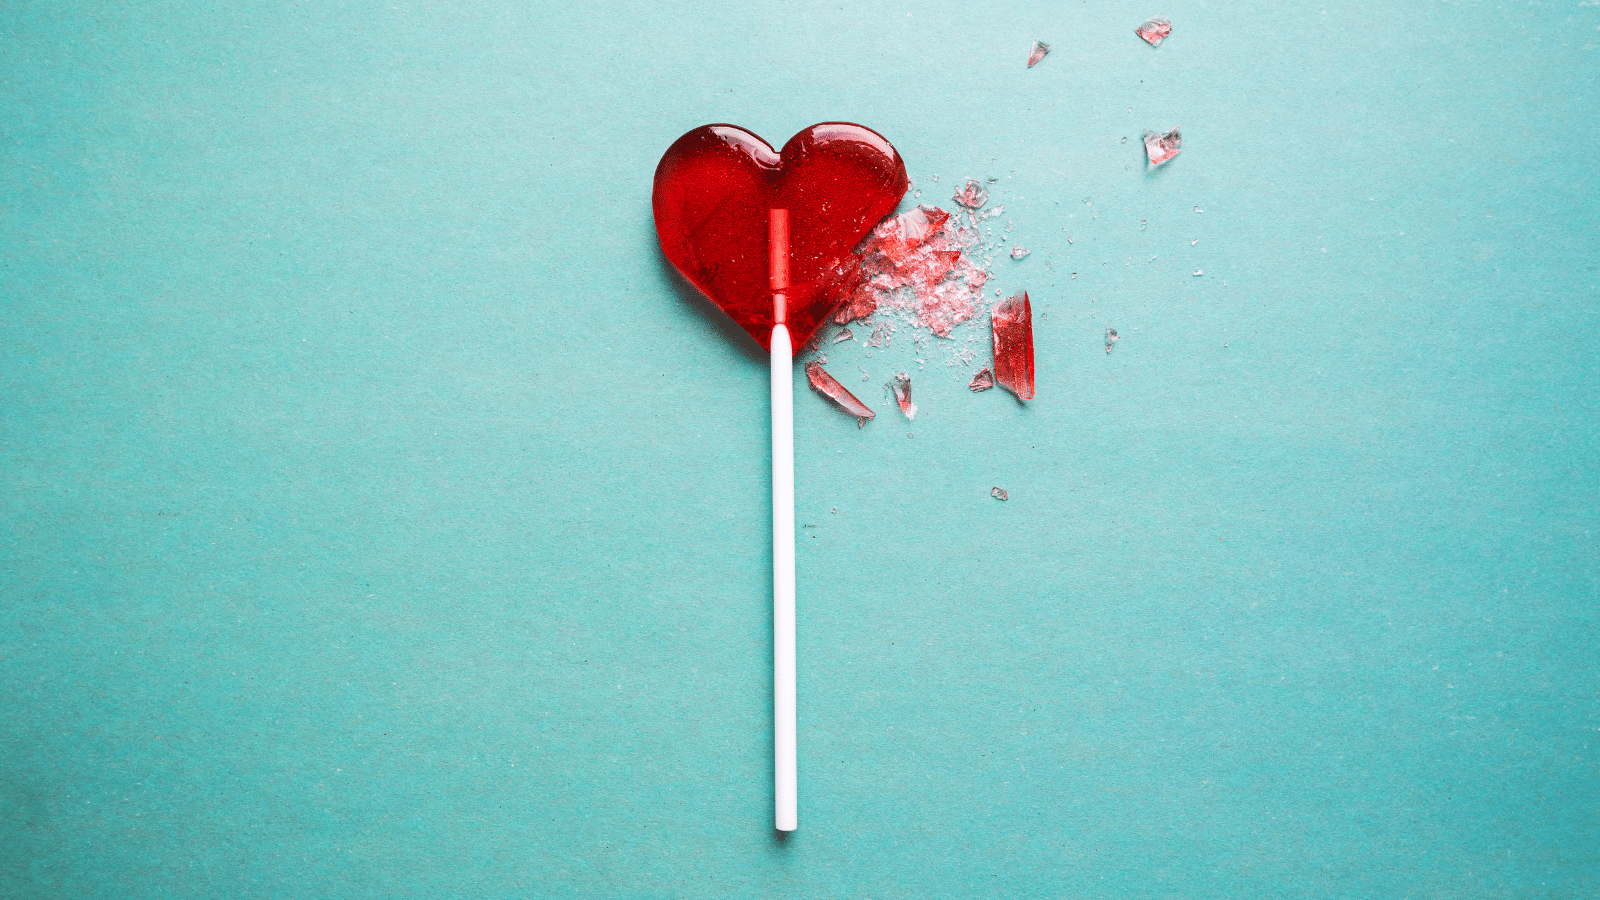 Healthy Ways to Heal After a Heartbreak